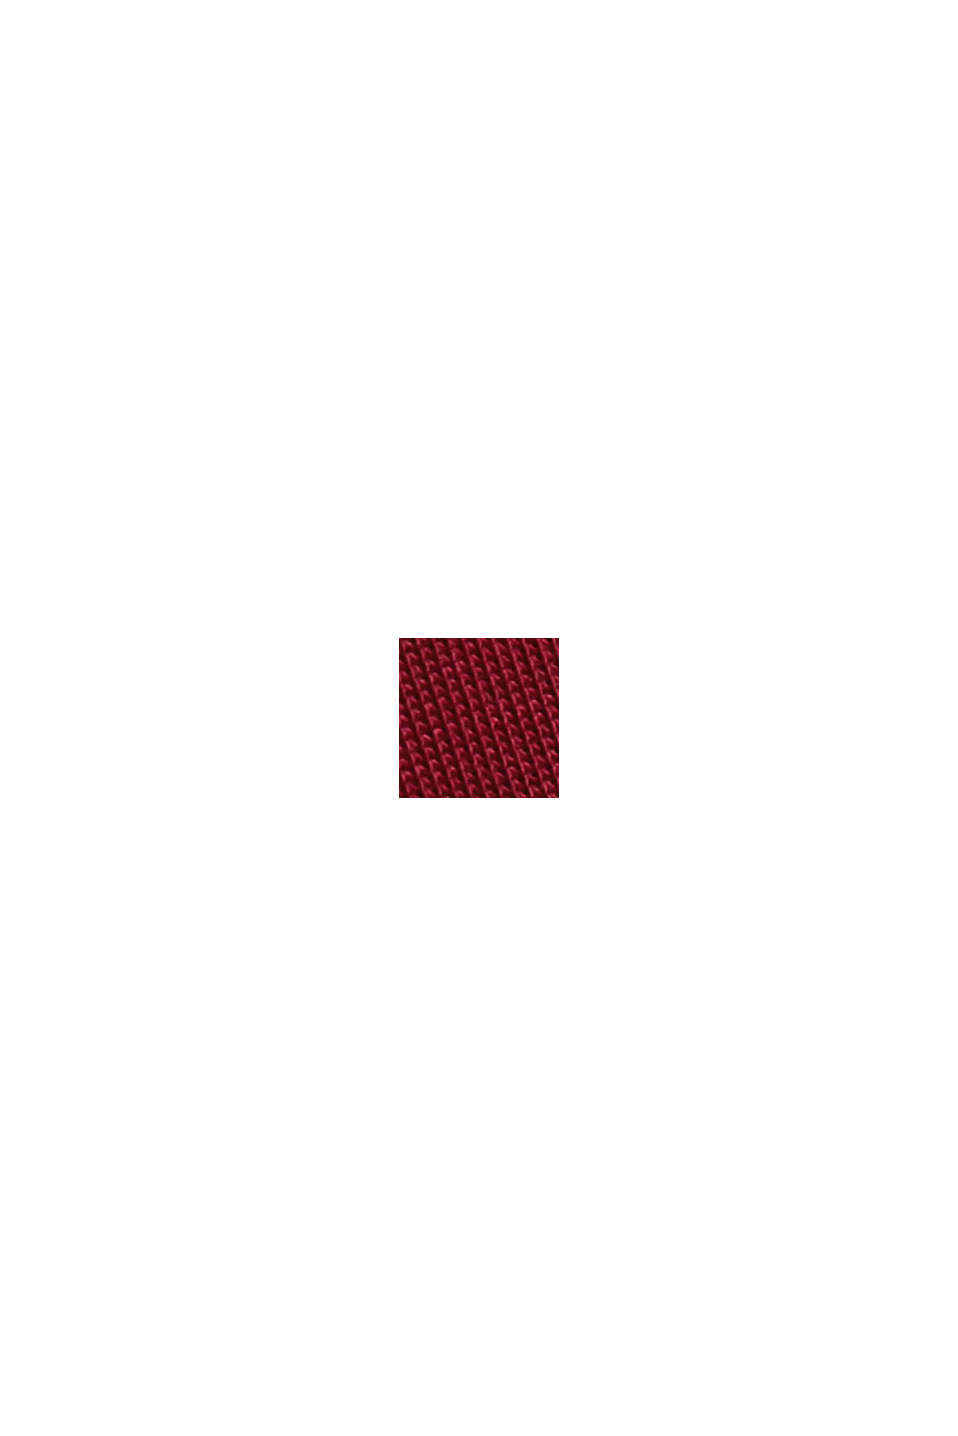 Soepel stretchshirt, BORDEAUX RED, swatch